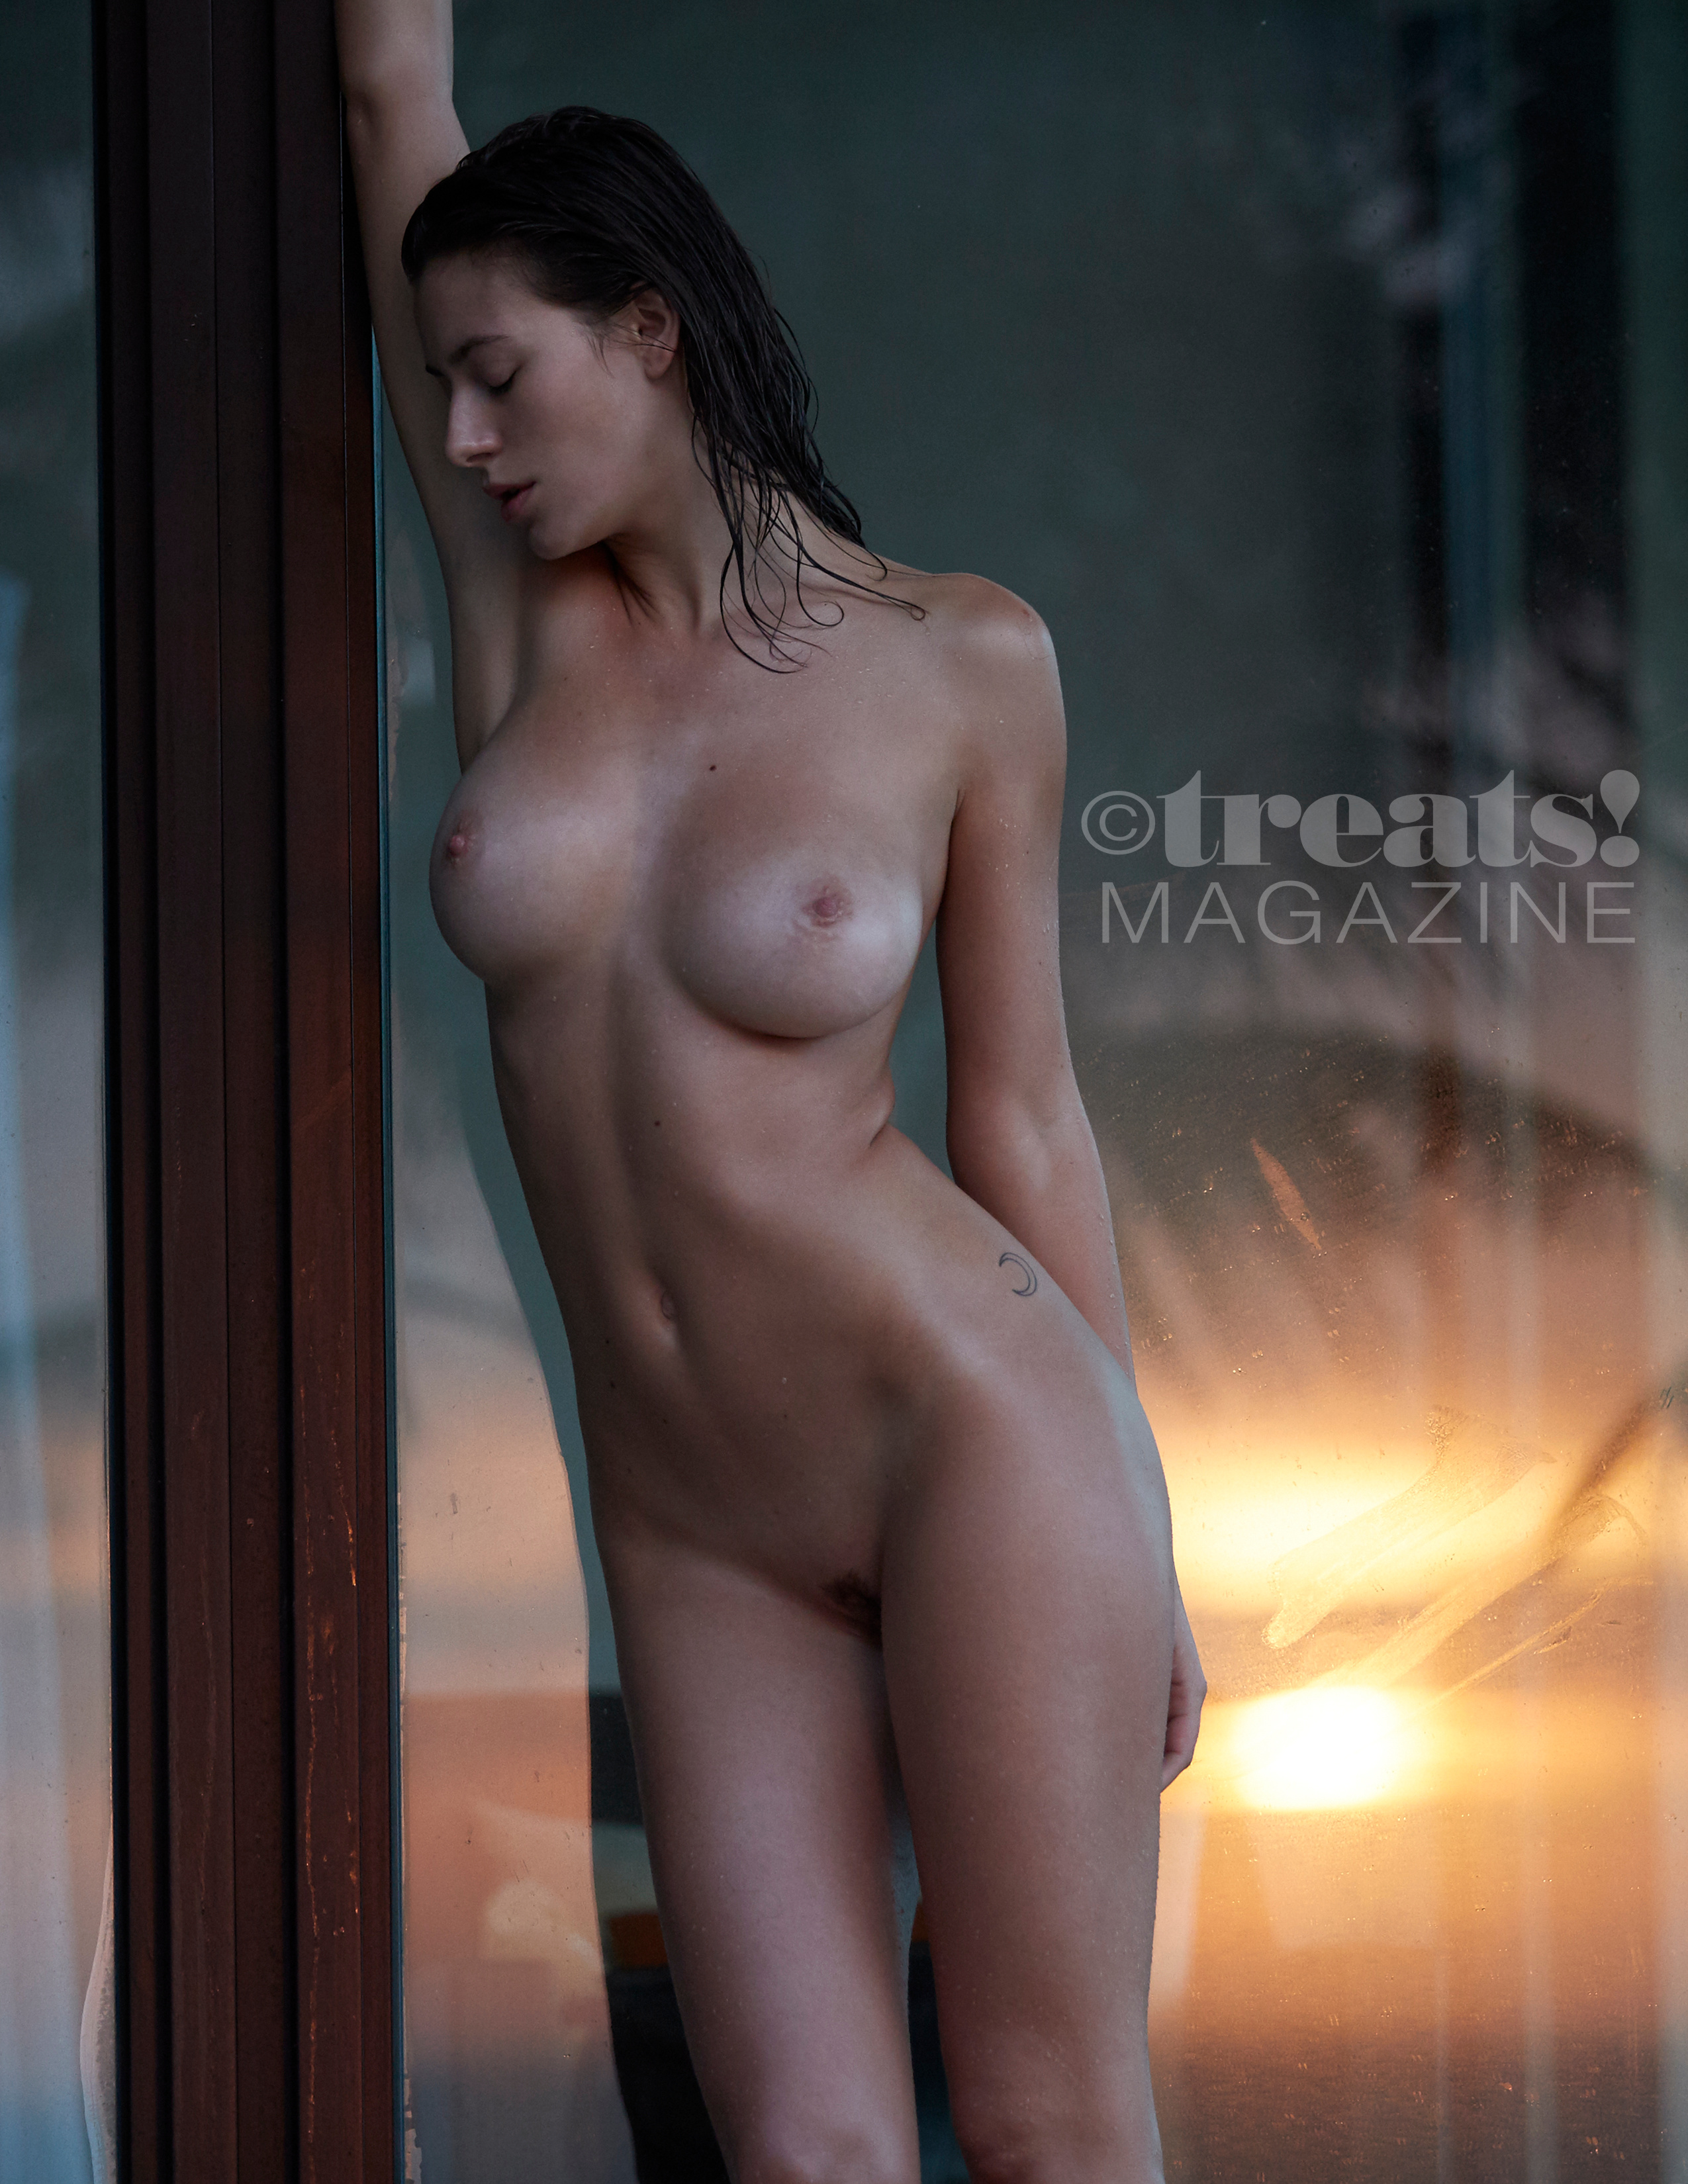 alejandra-guilmant-perfect-nude-body-erotic-treats-magazine-by-david-bellemere-21